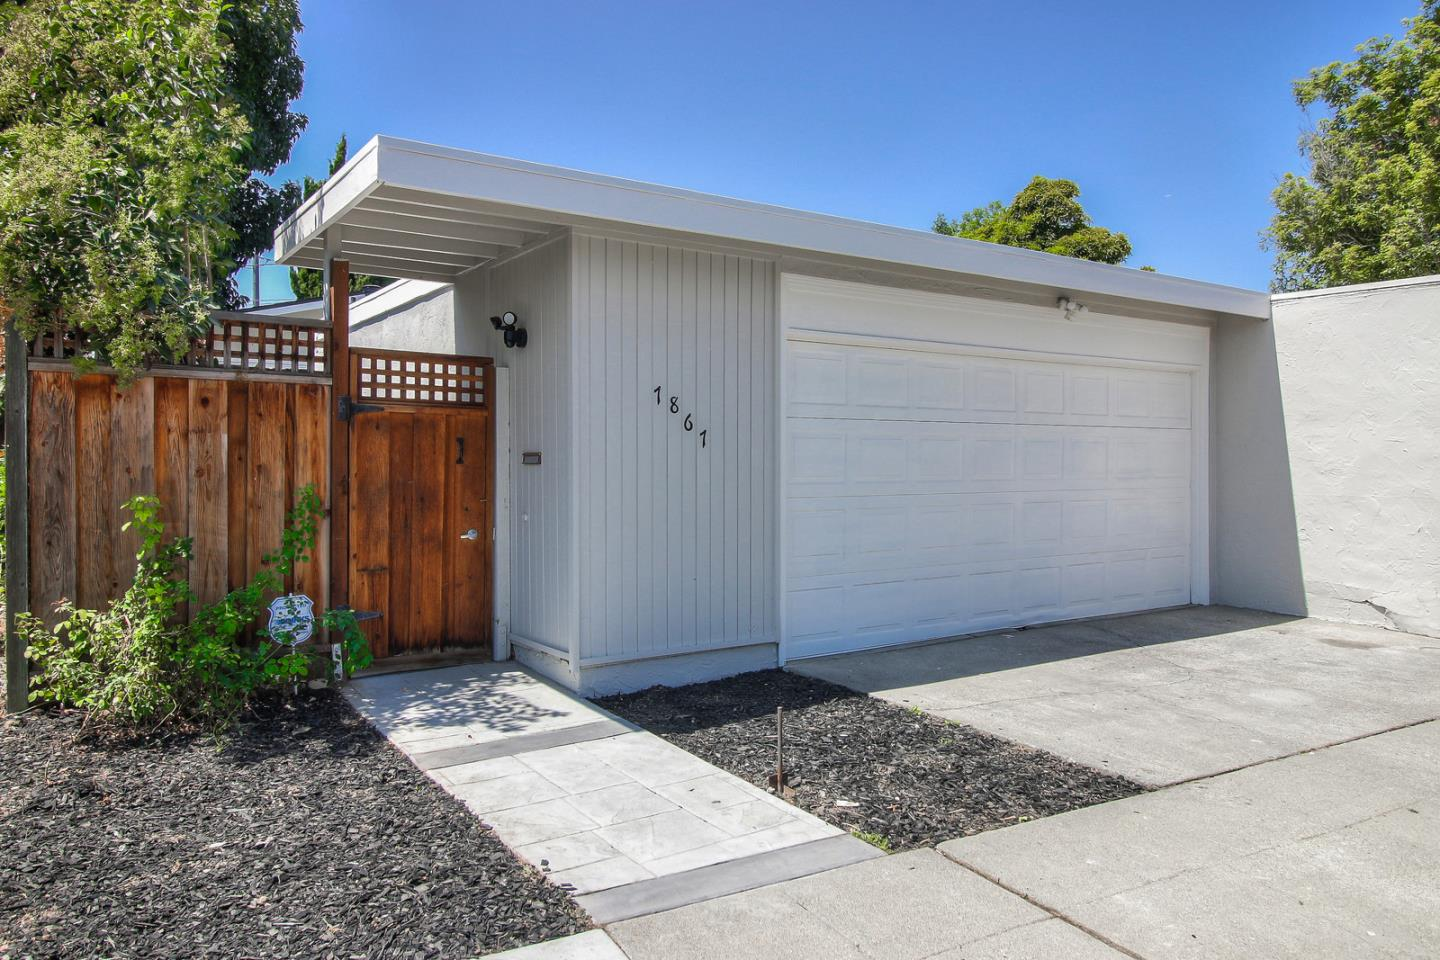 1867 FOREST CT, MILPITAS, CA 95035